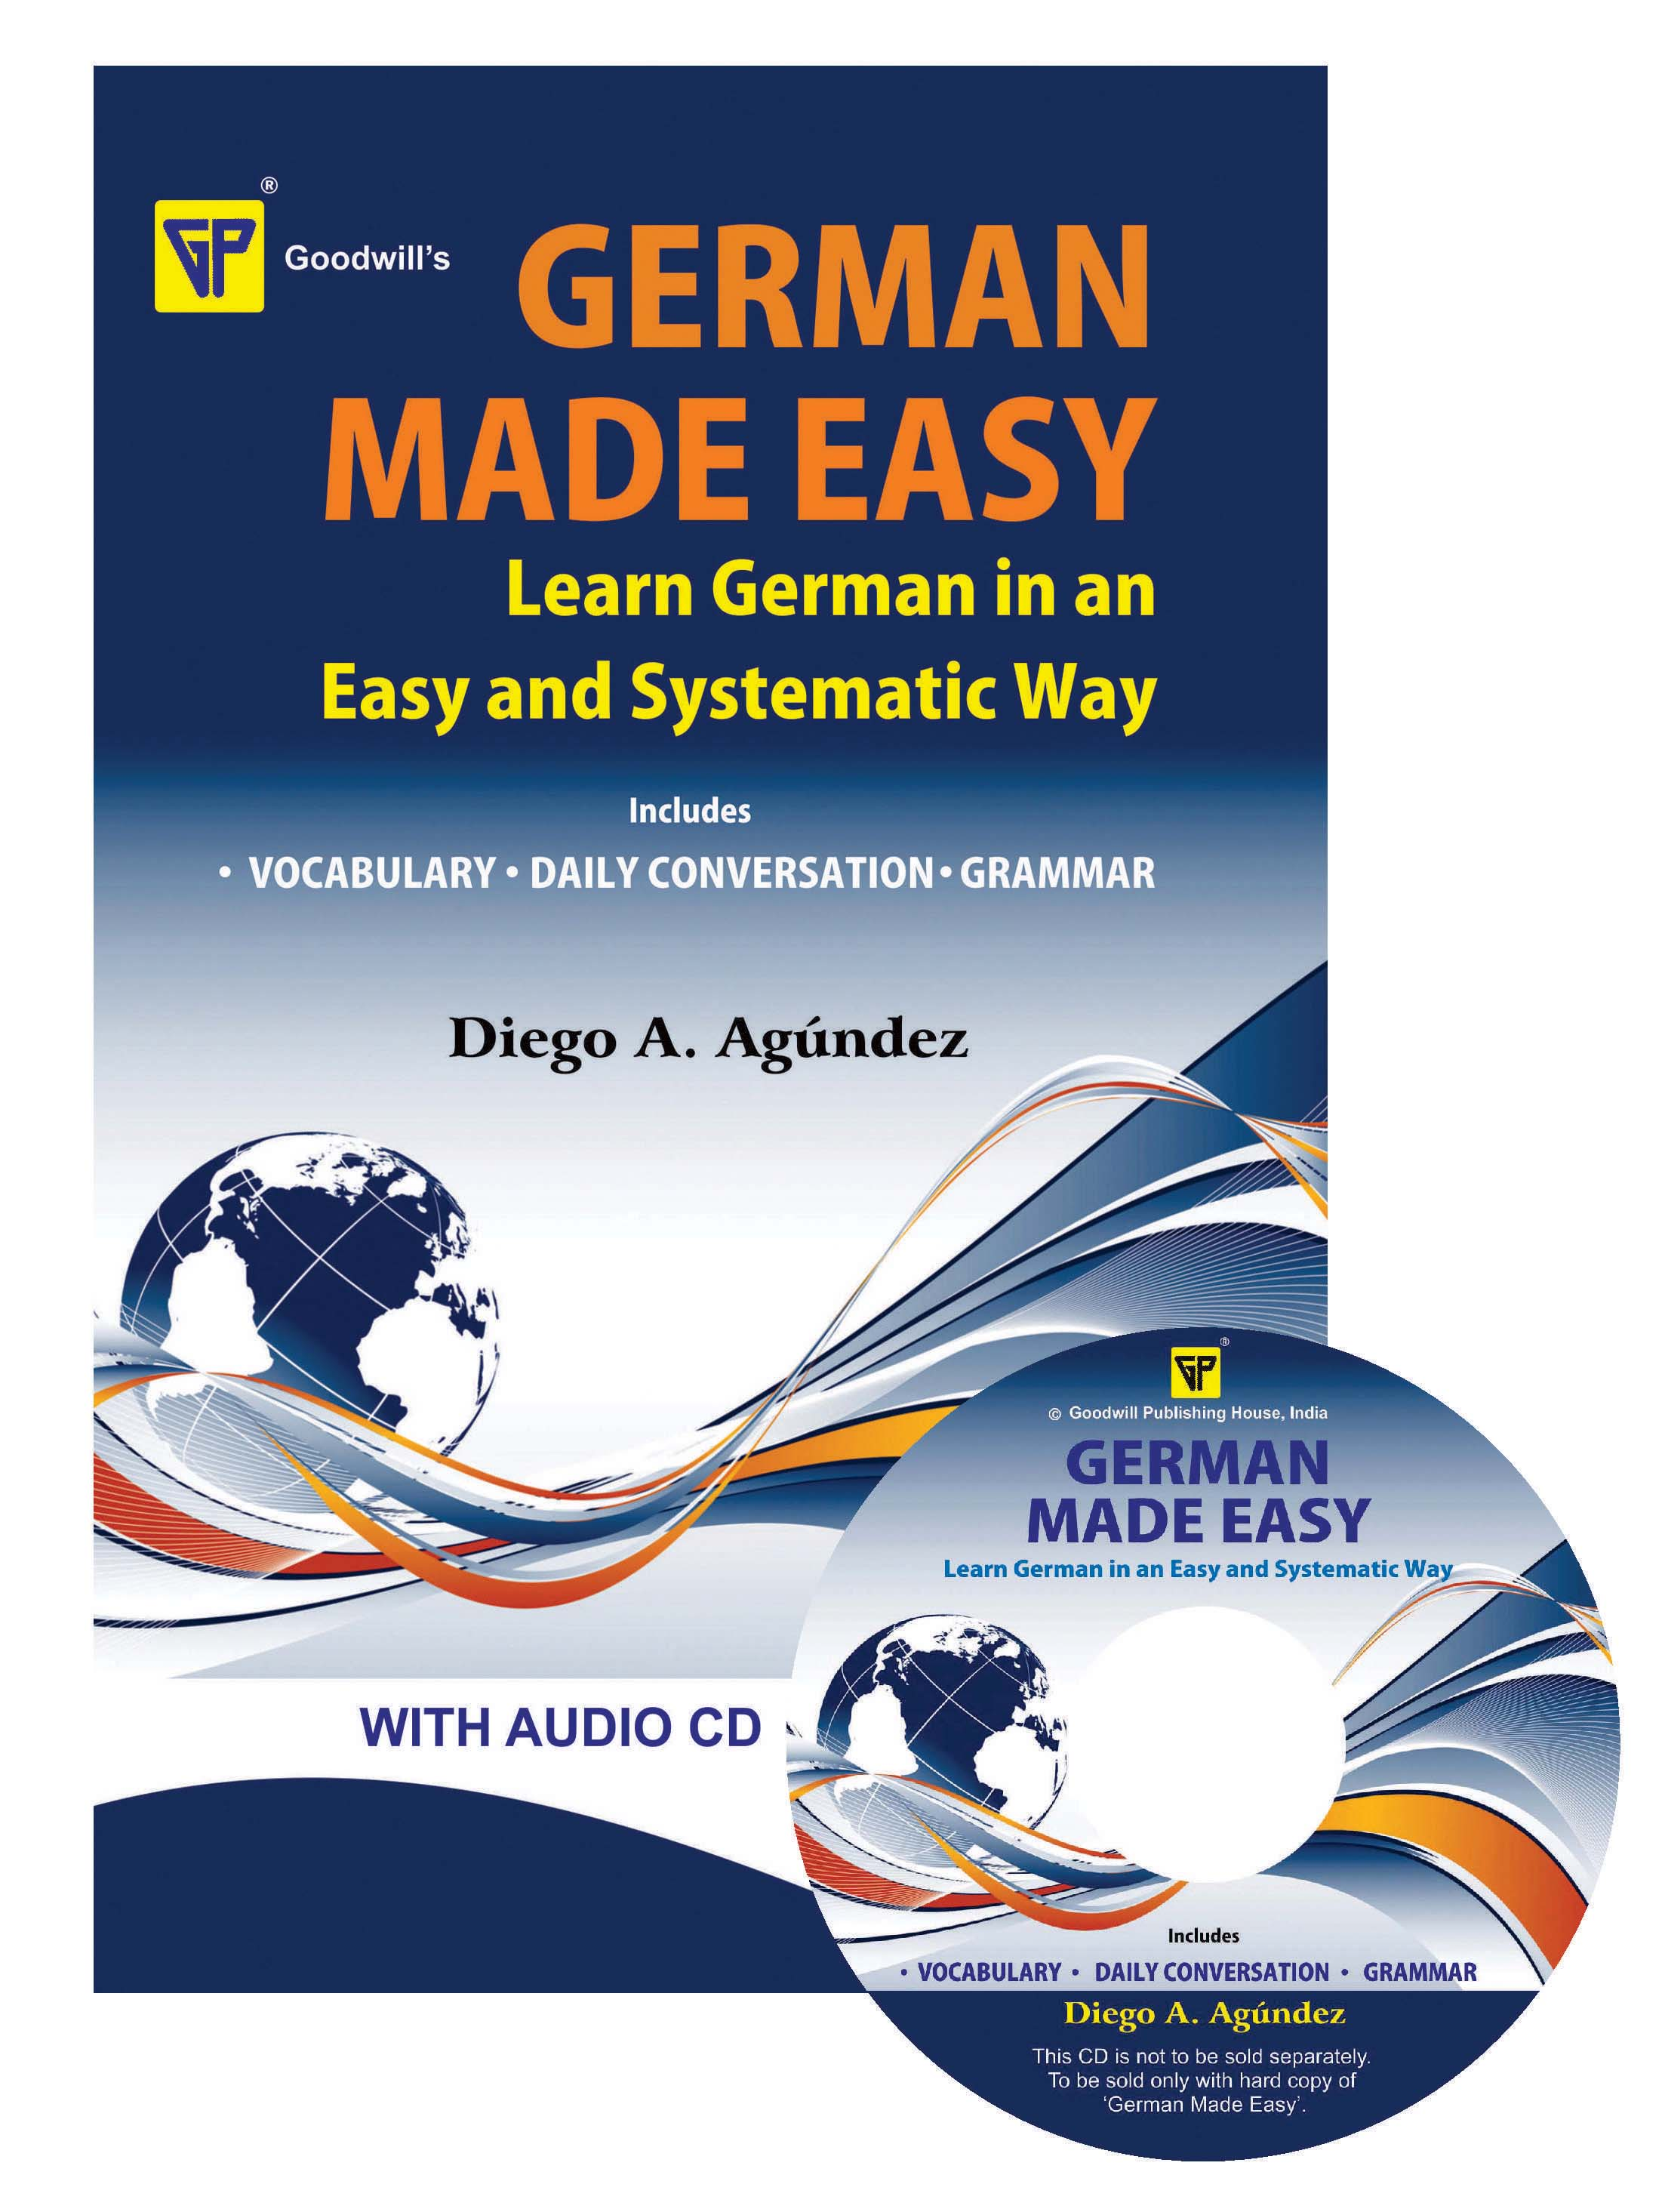 German Made Easy With Audio CD